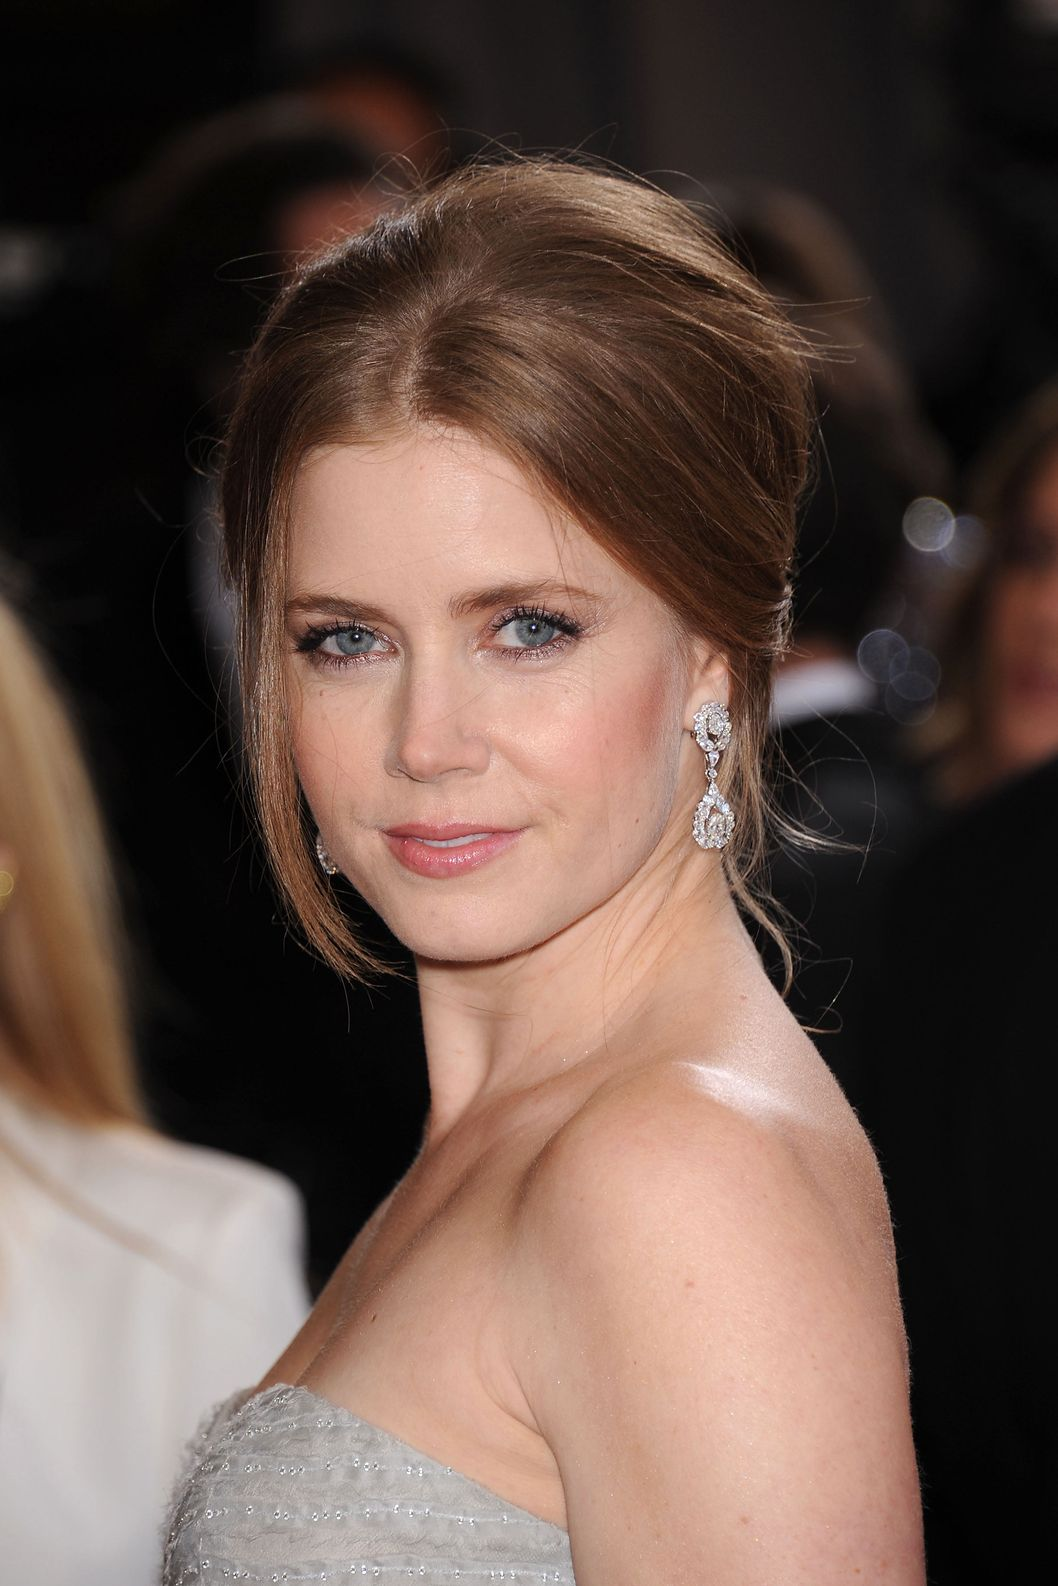 Feb. 24, 2013 - Los Angeles, California, U.S. - AMY ADAMS, nominated for best actress in a supporting role, wears a strapless Oscar de la Renta gown and Moa jewelry as she arrives on the red carpet for the 85th Academy Awards at the Dolby Theatre.